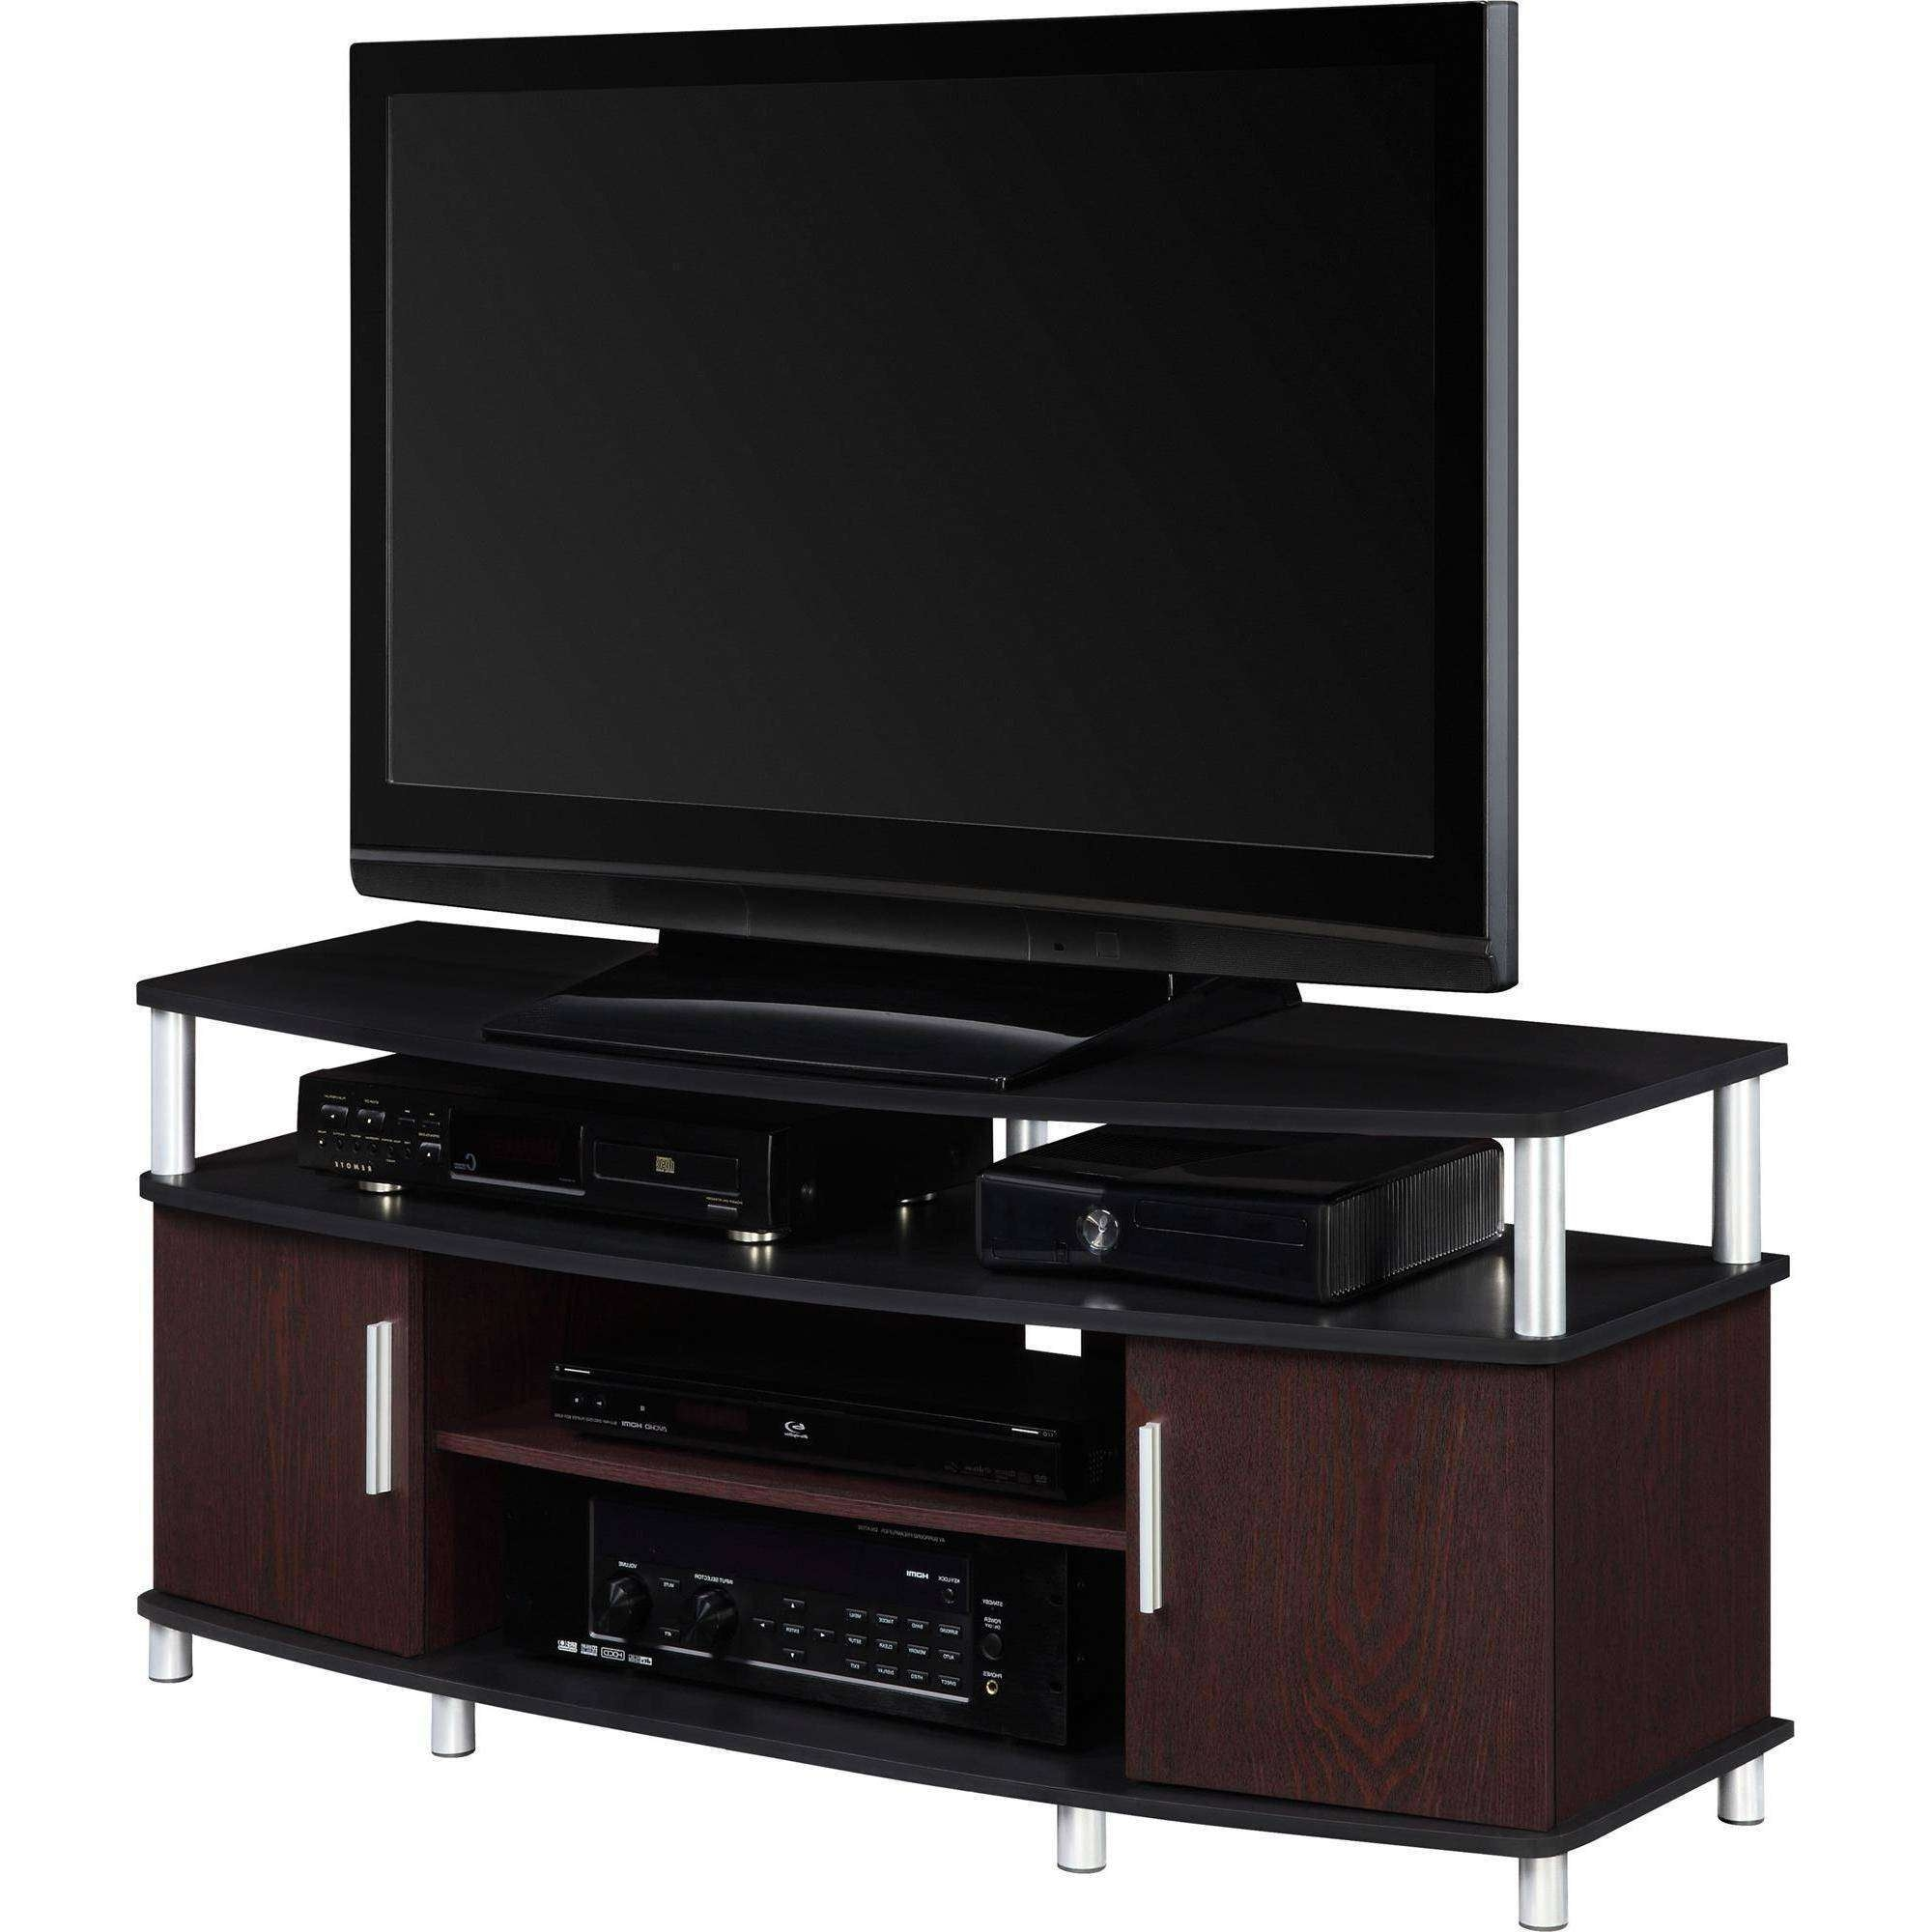 Tv : Tv Stands 7 Best Selling Amazing Unique Tv Stands For Flat With Unique Tv Stands For Flat Screens (View 18 of 20)